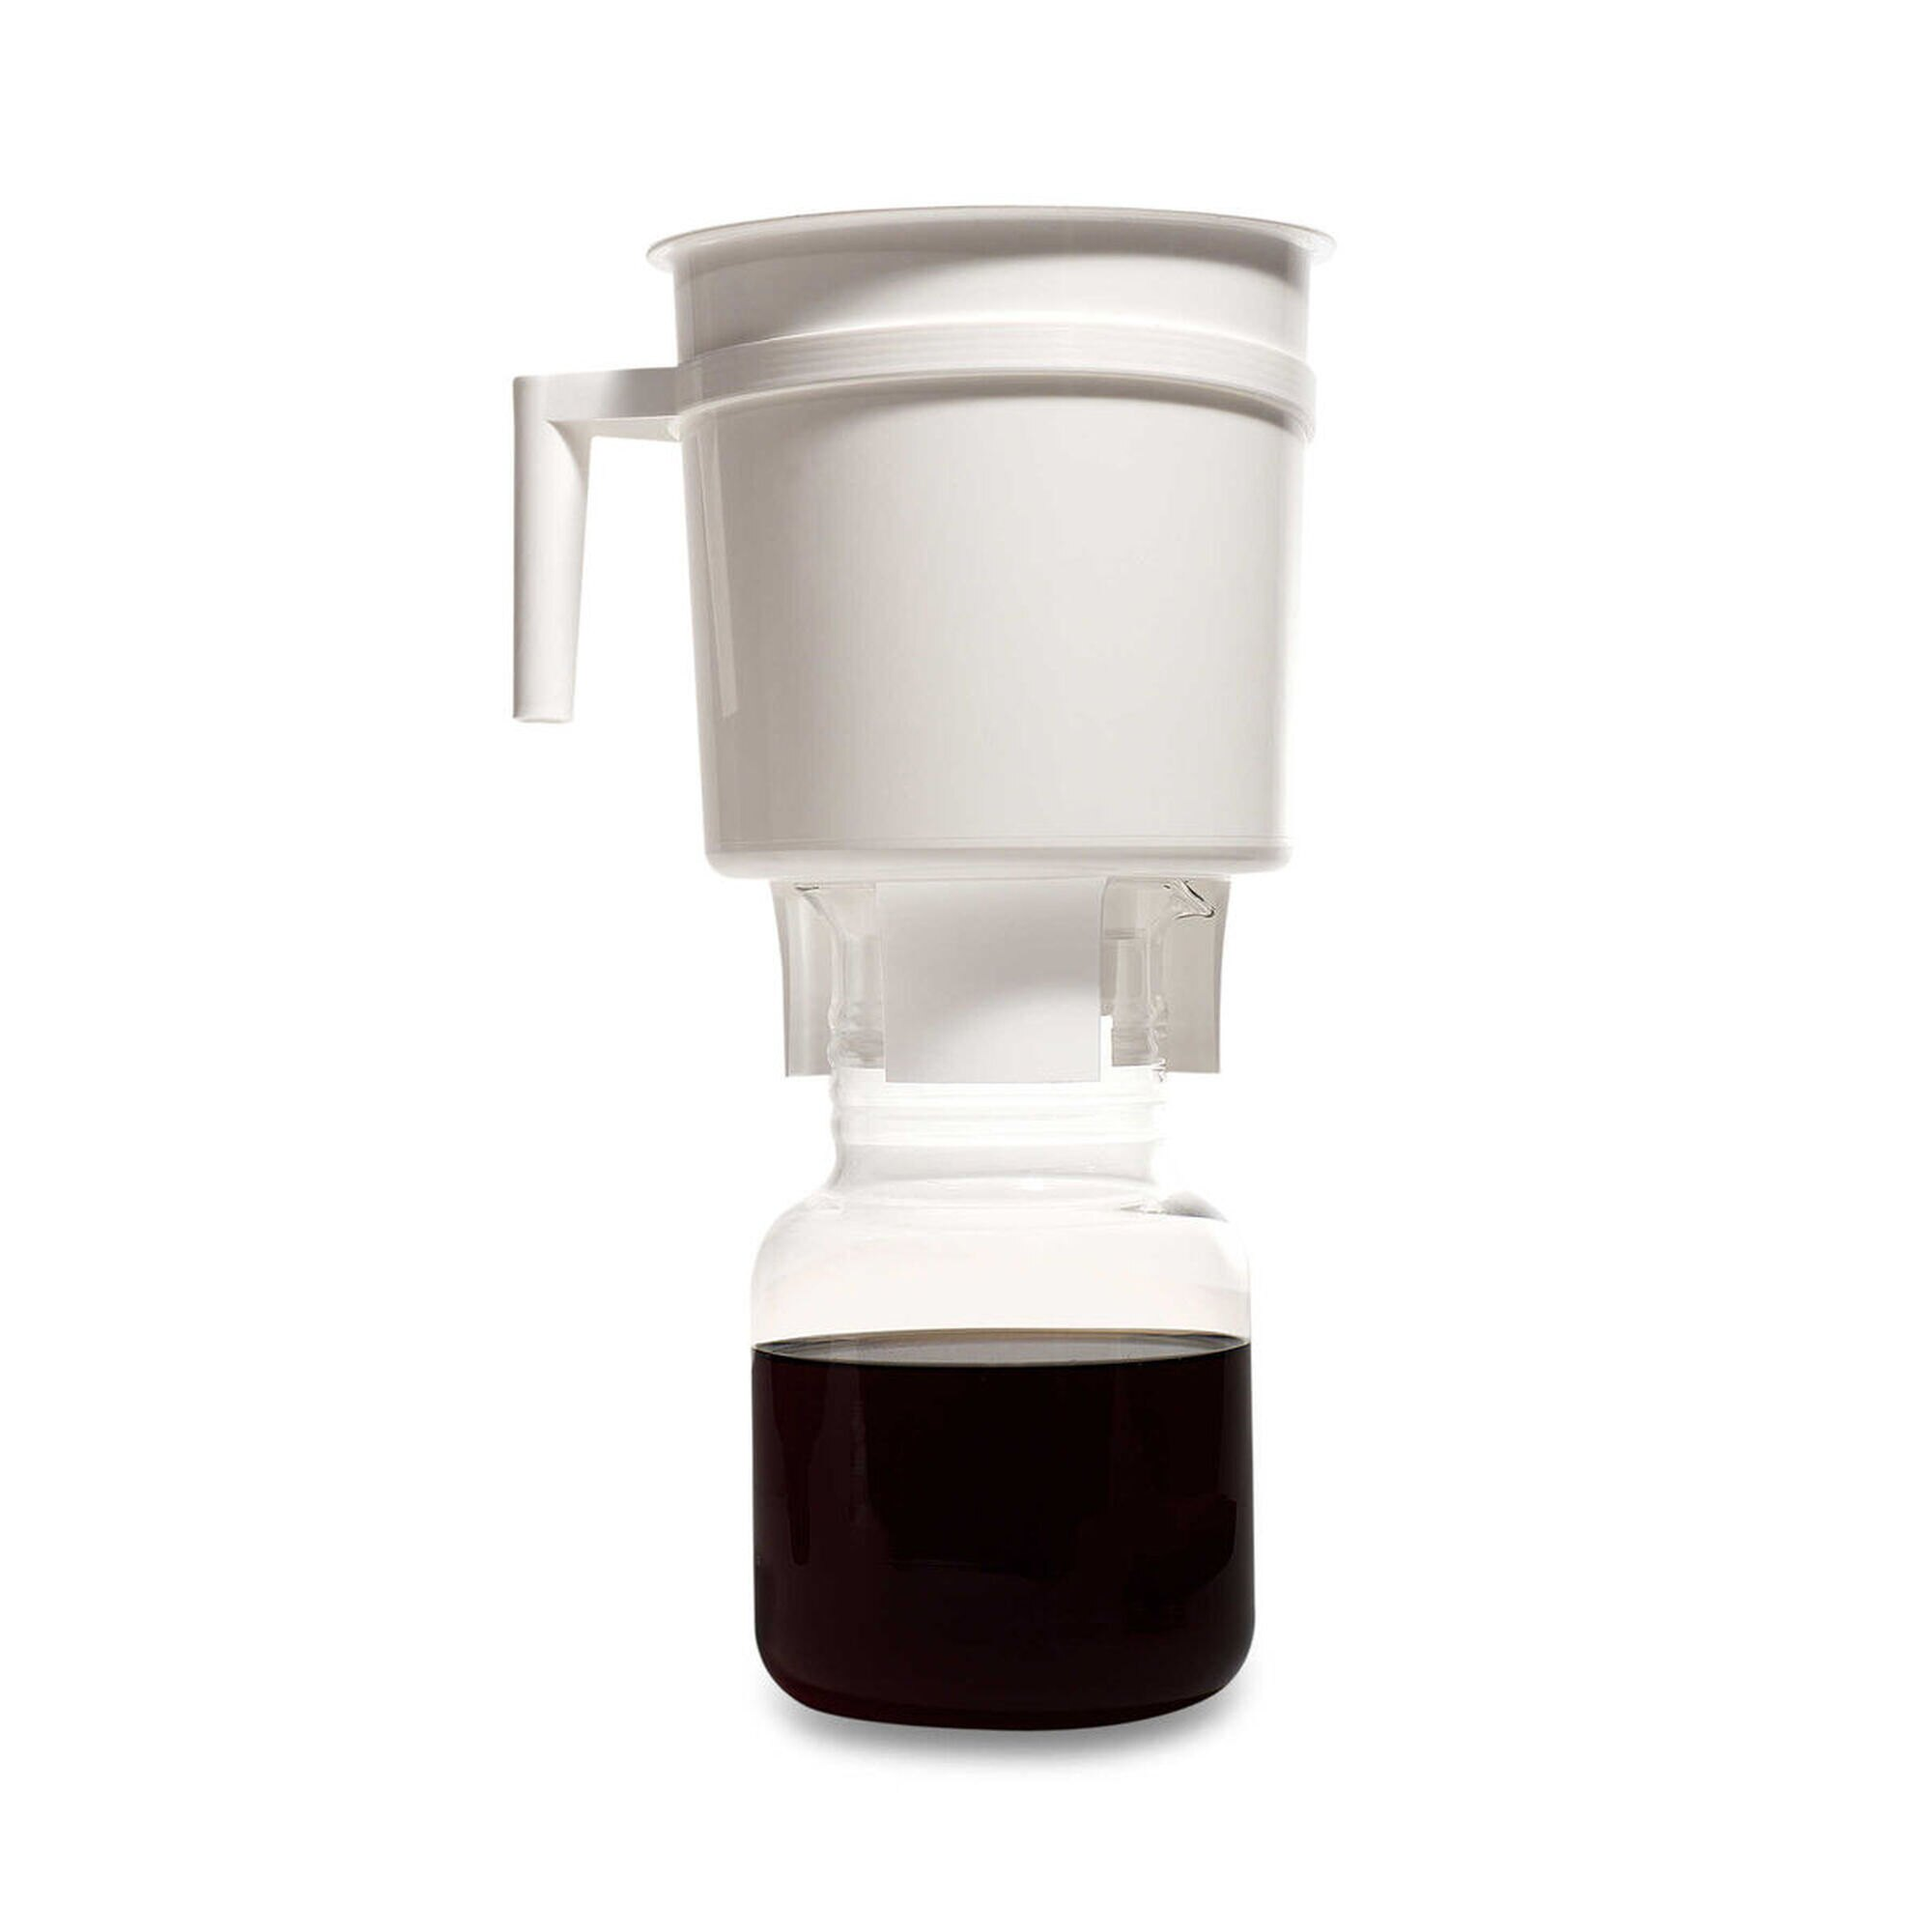 Toddy cold brew coffee makers cold coffee maker toddy top best.